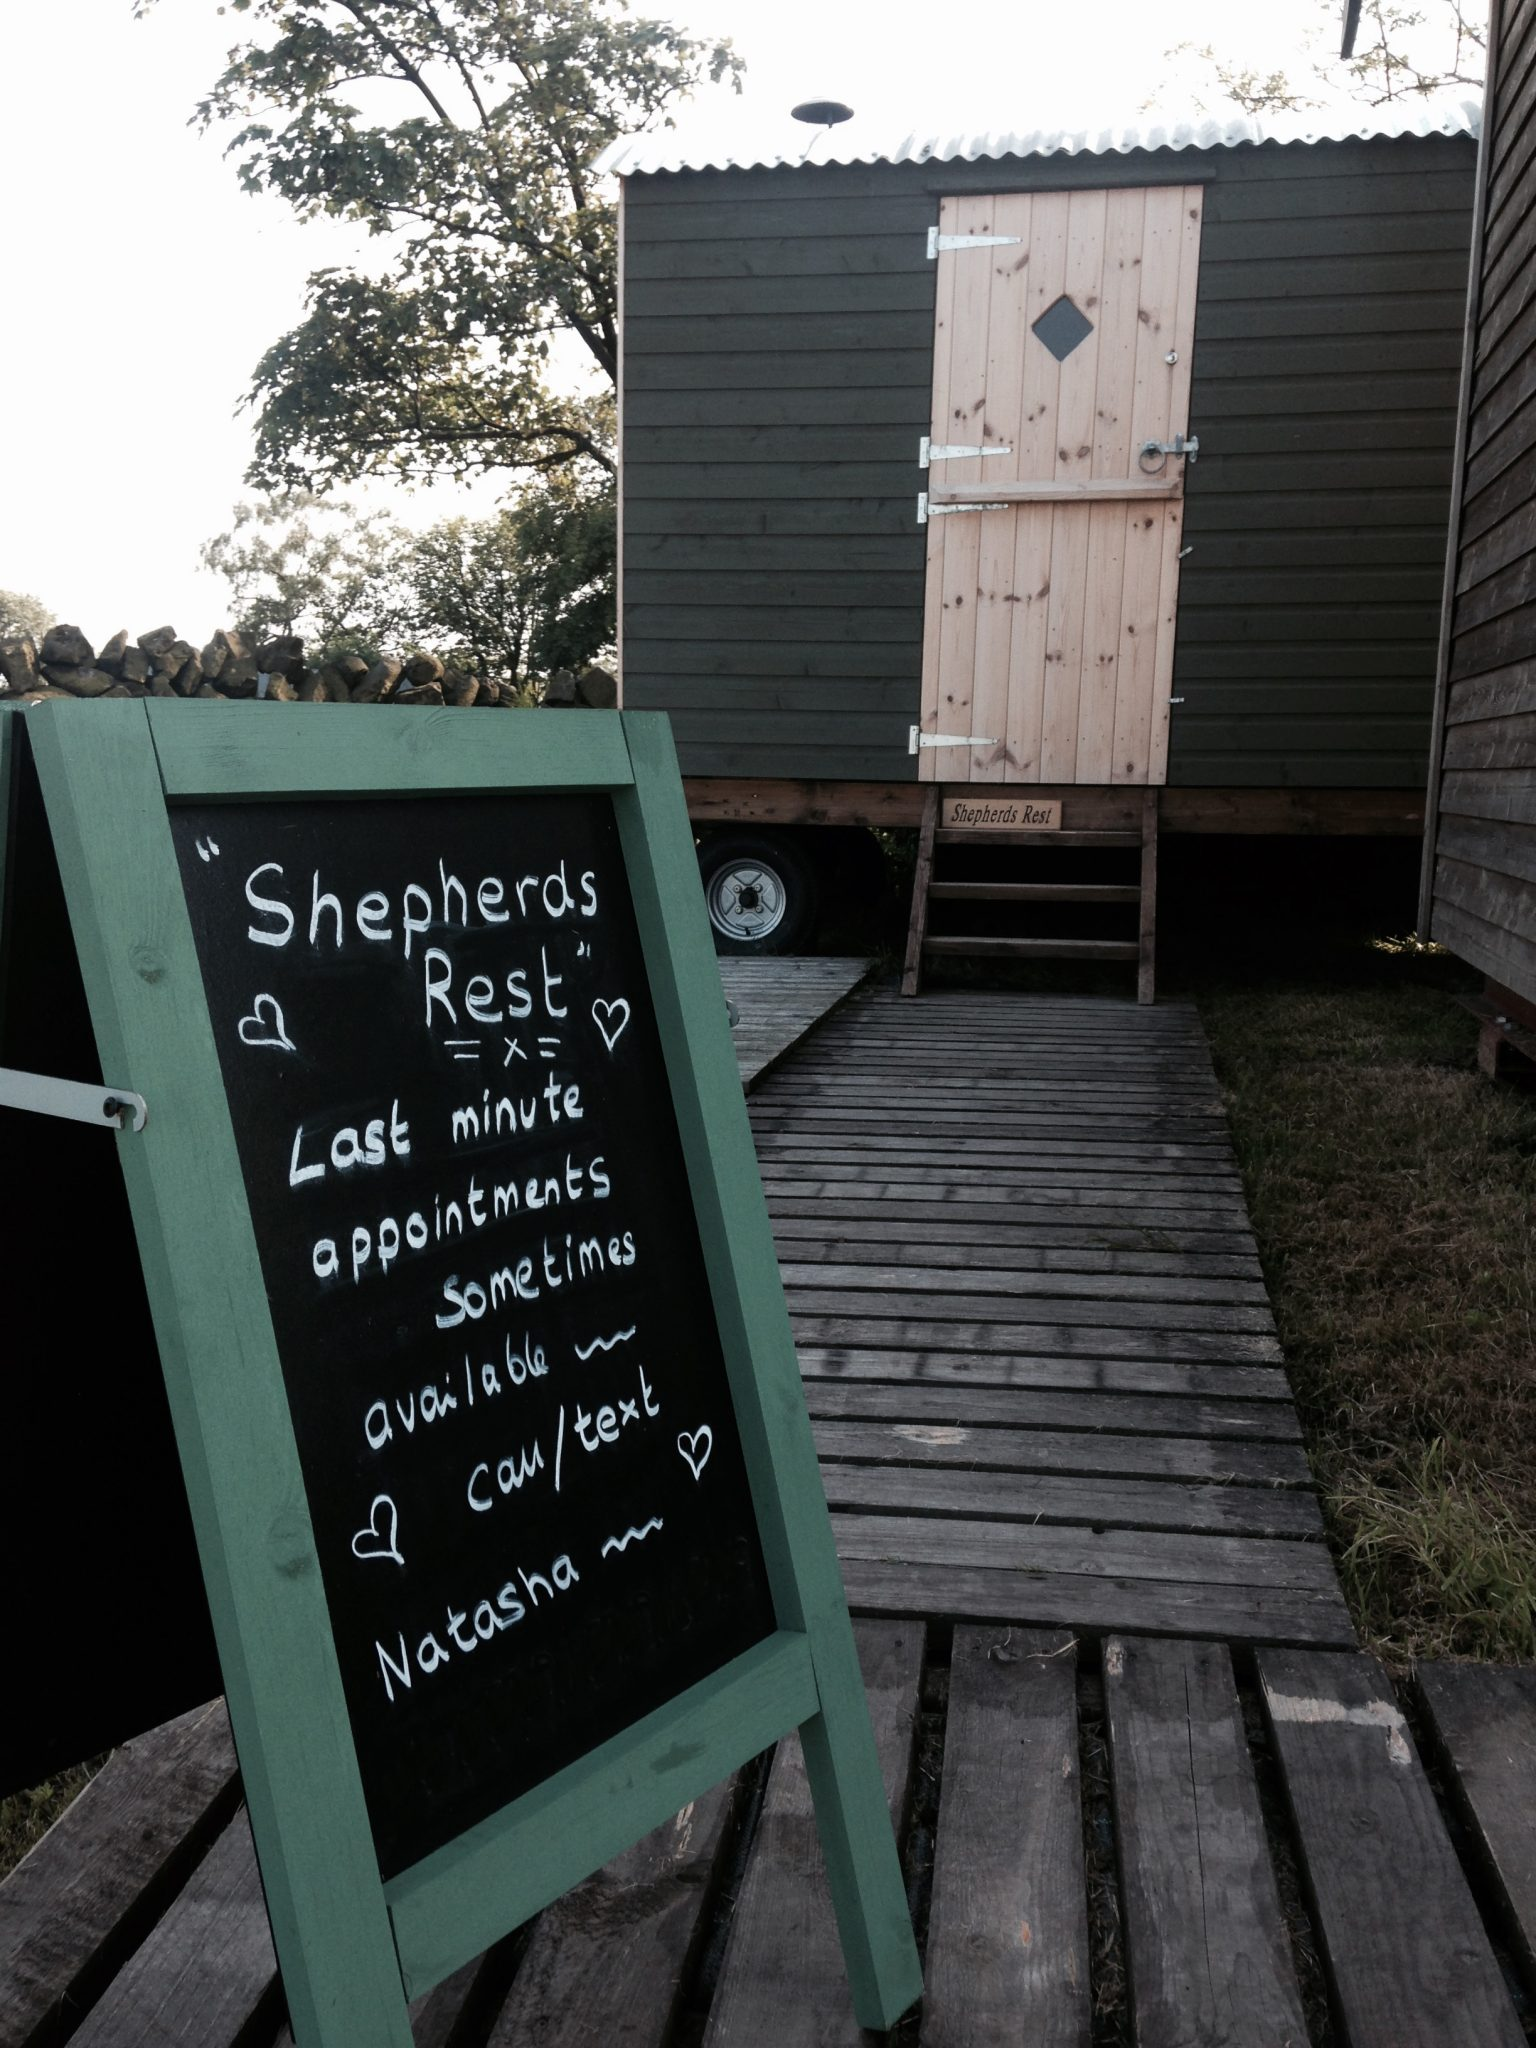 Shepherd's Rest treatment hut at Secret Cloud House Holidays Glamping site